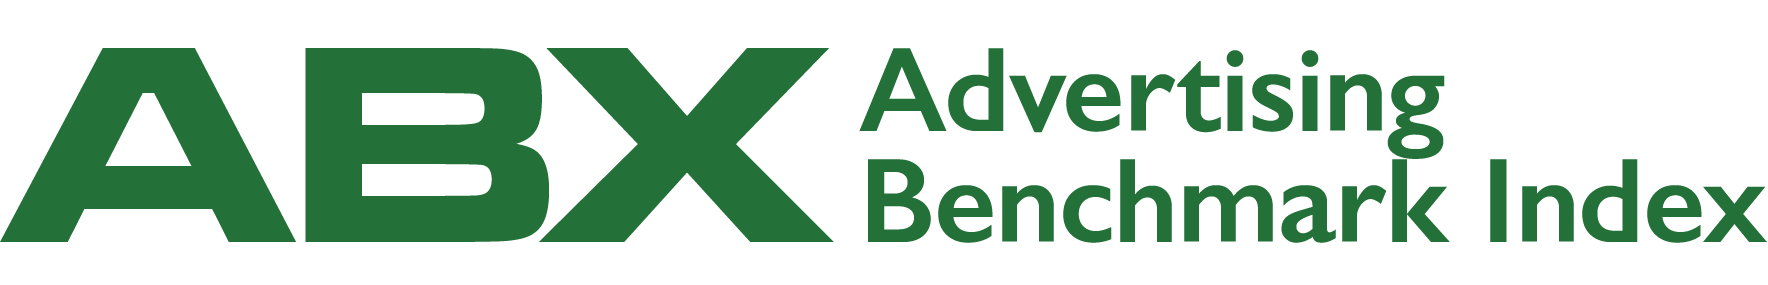 Logo-2017-ABX-Green.png